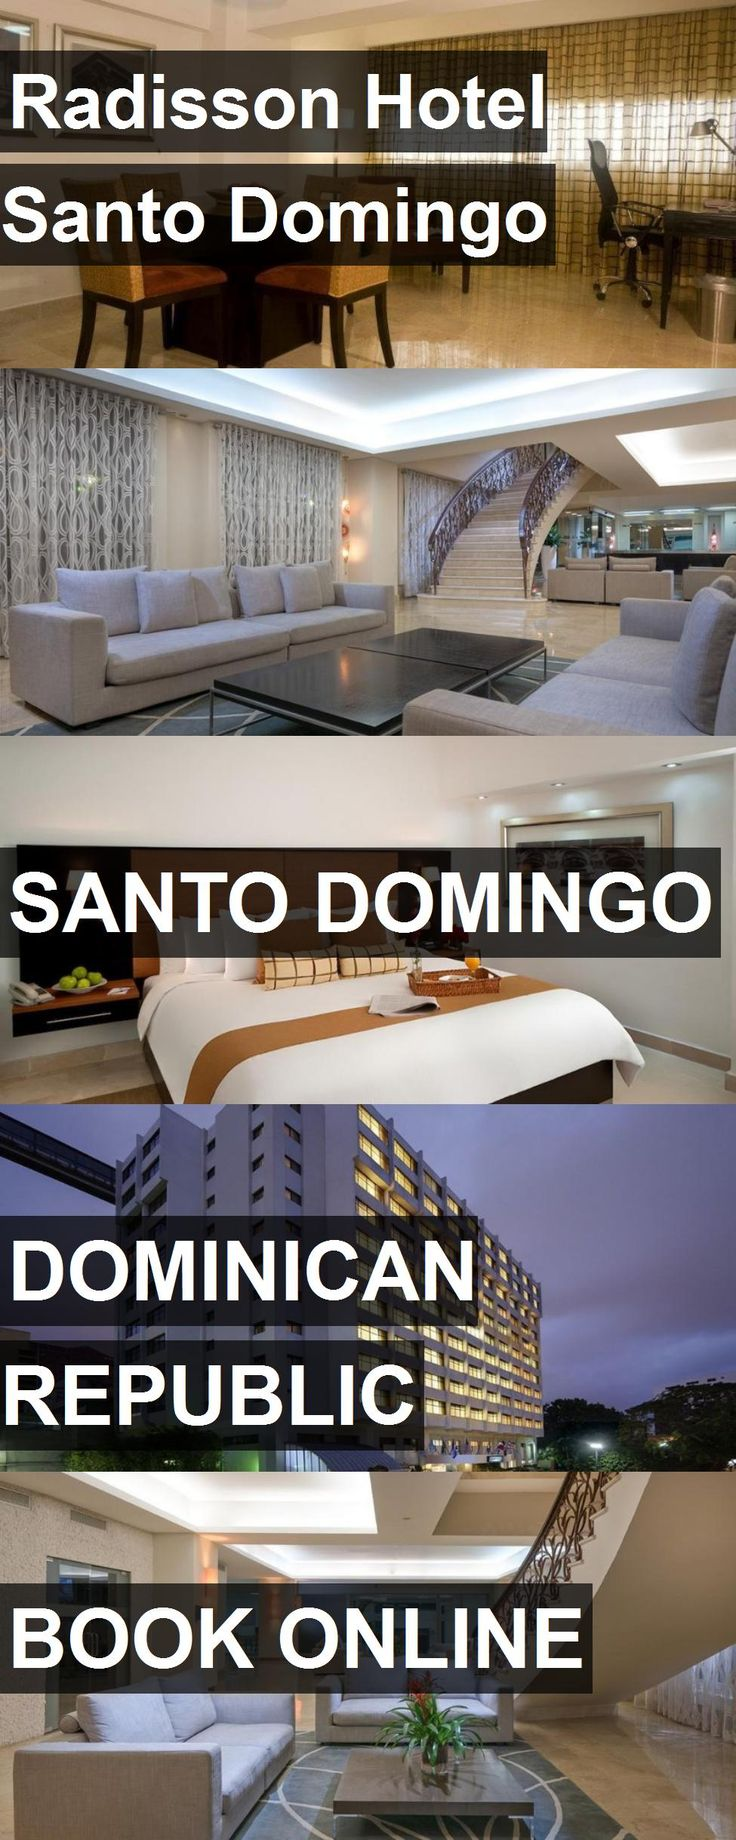 Hotel Radisson Hotel Santo Domingo in Santo Domingo, Dominican Republic. For more information, photos, reviews and best prices please follow the link. #DominicanRepublic #SantoDomingo #RadissonHotelSantoDomingo #hotel #travel #vacation